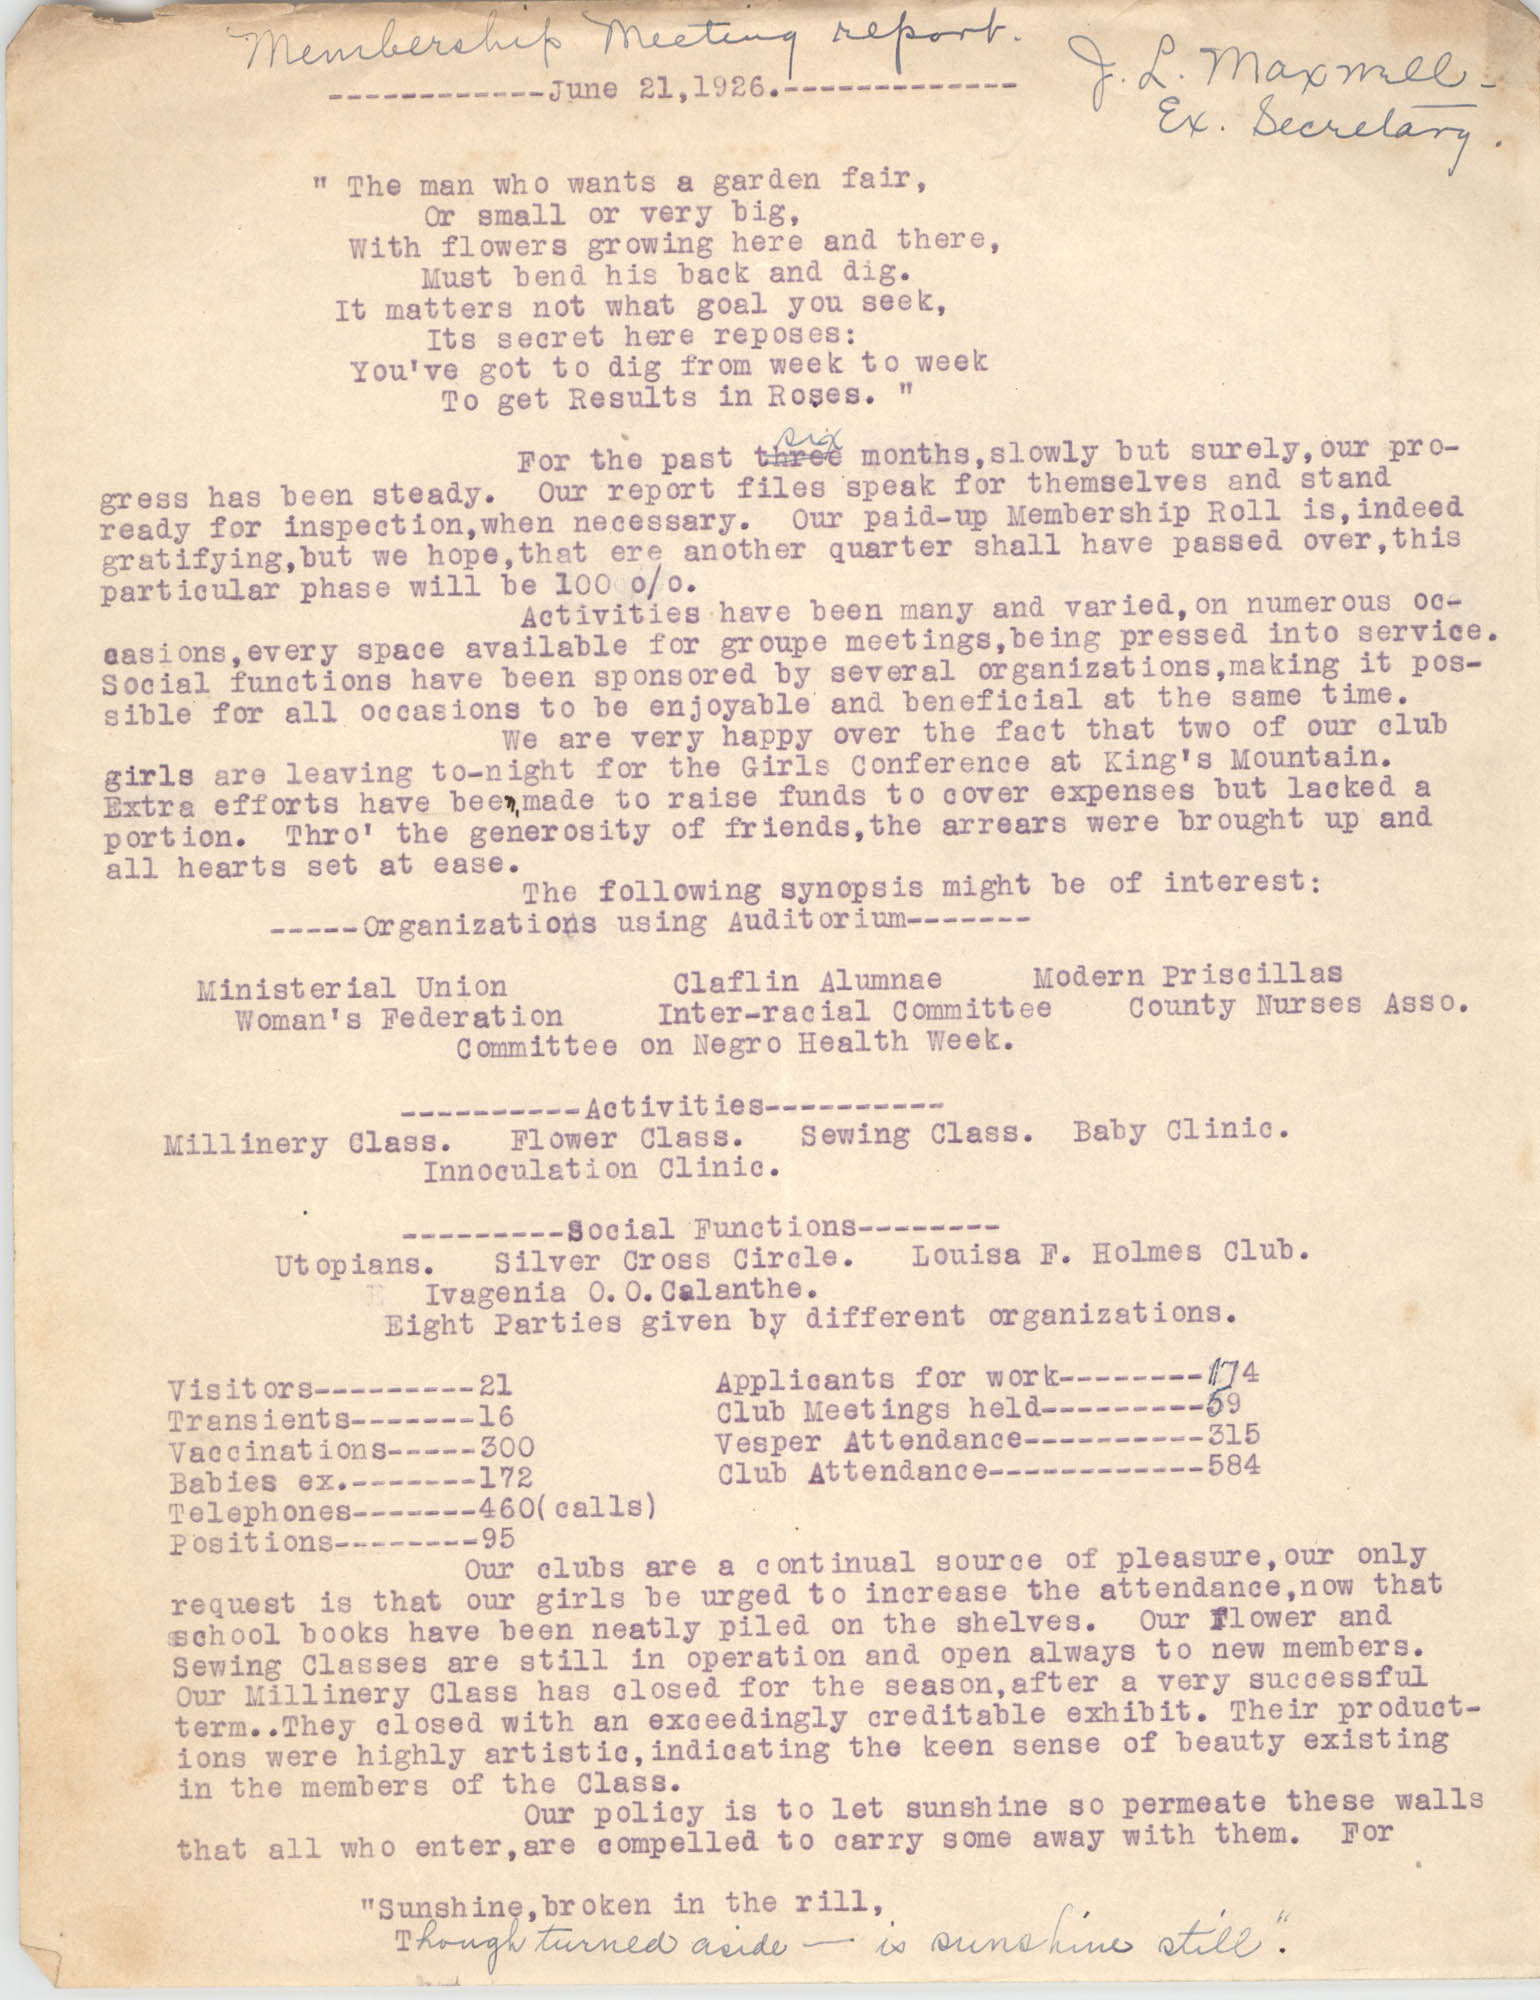 Membership Meeting Report for the Coming Street Y.W.C.A., June 21, 1926